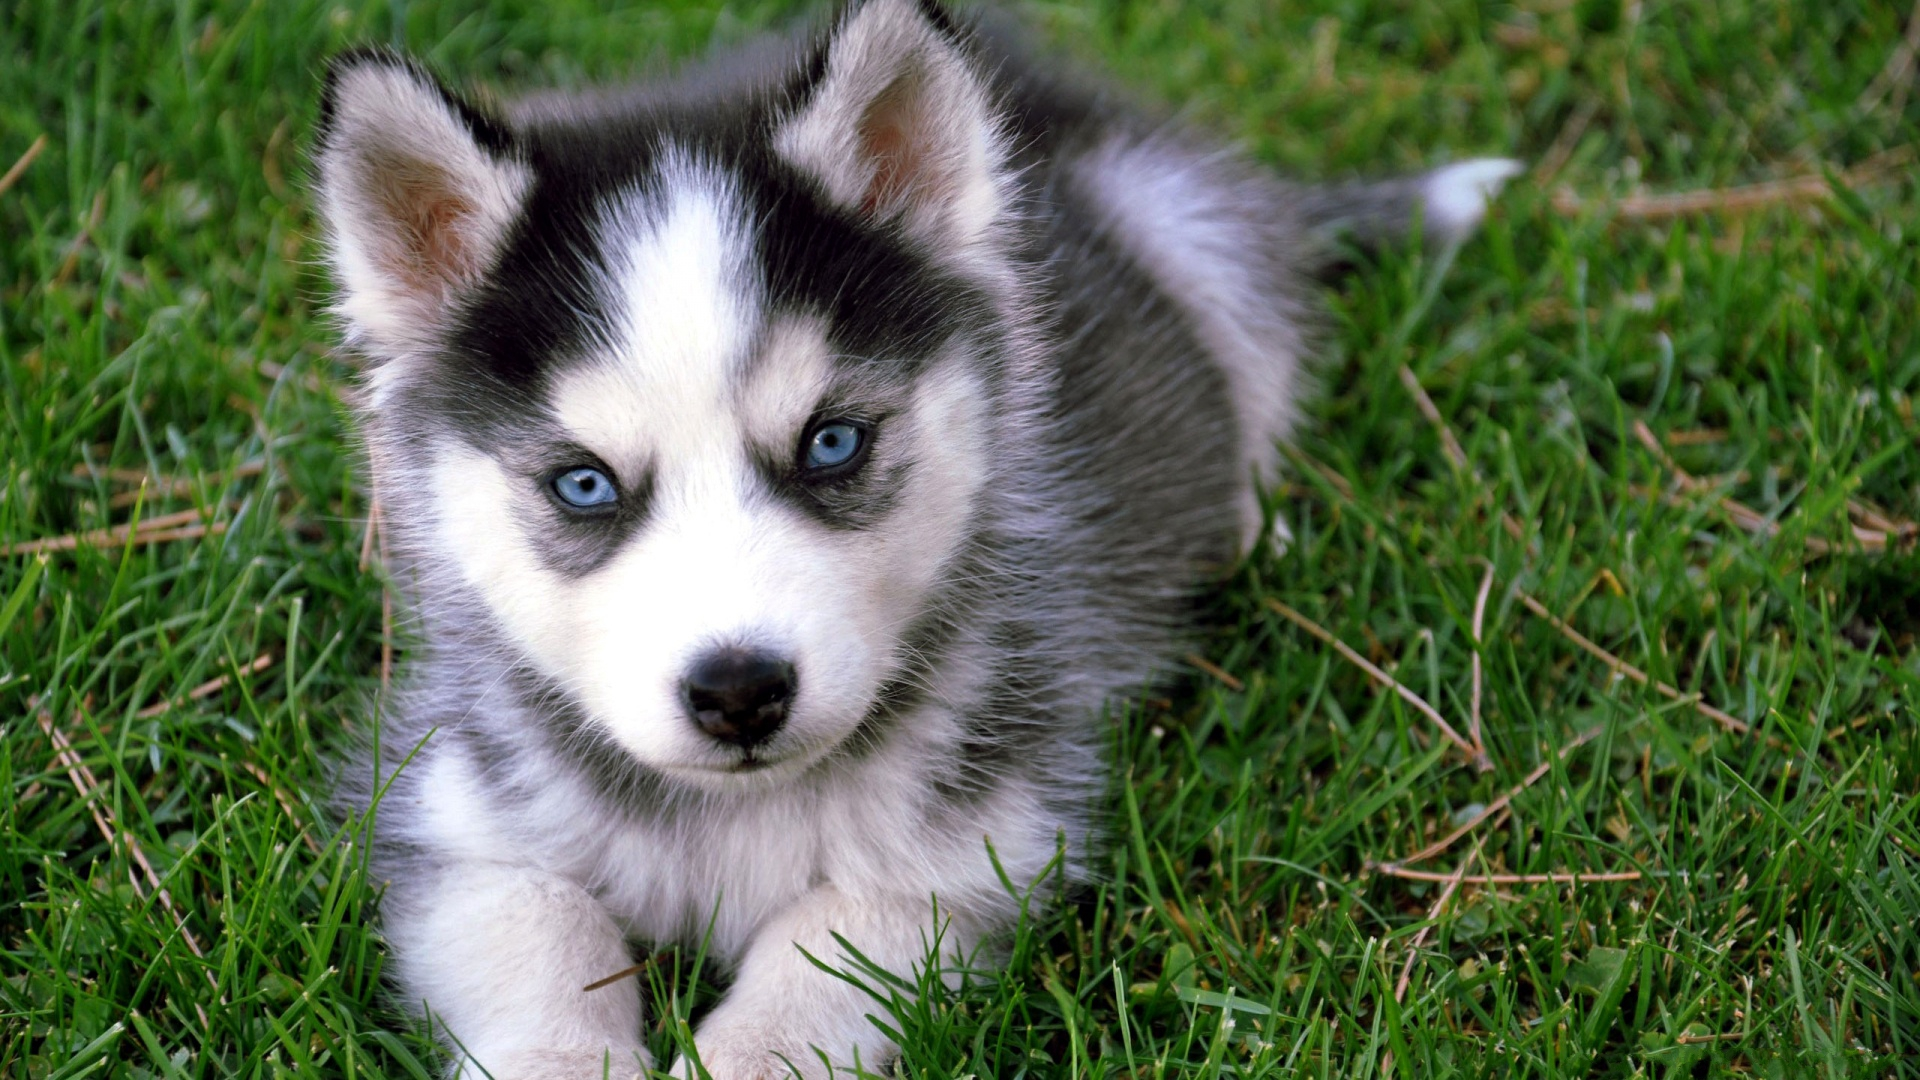 Cute Puppy HD Wallpapers 1920x1080